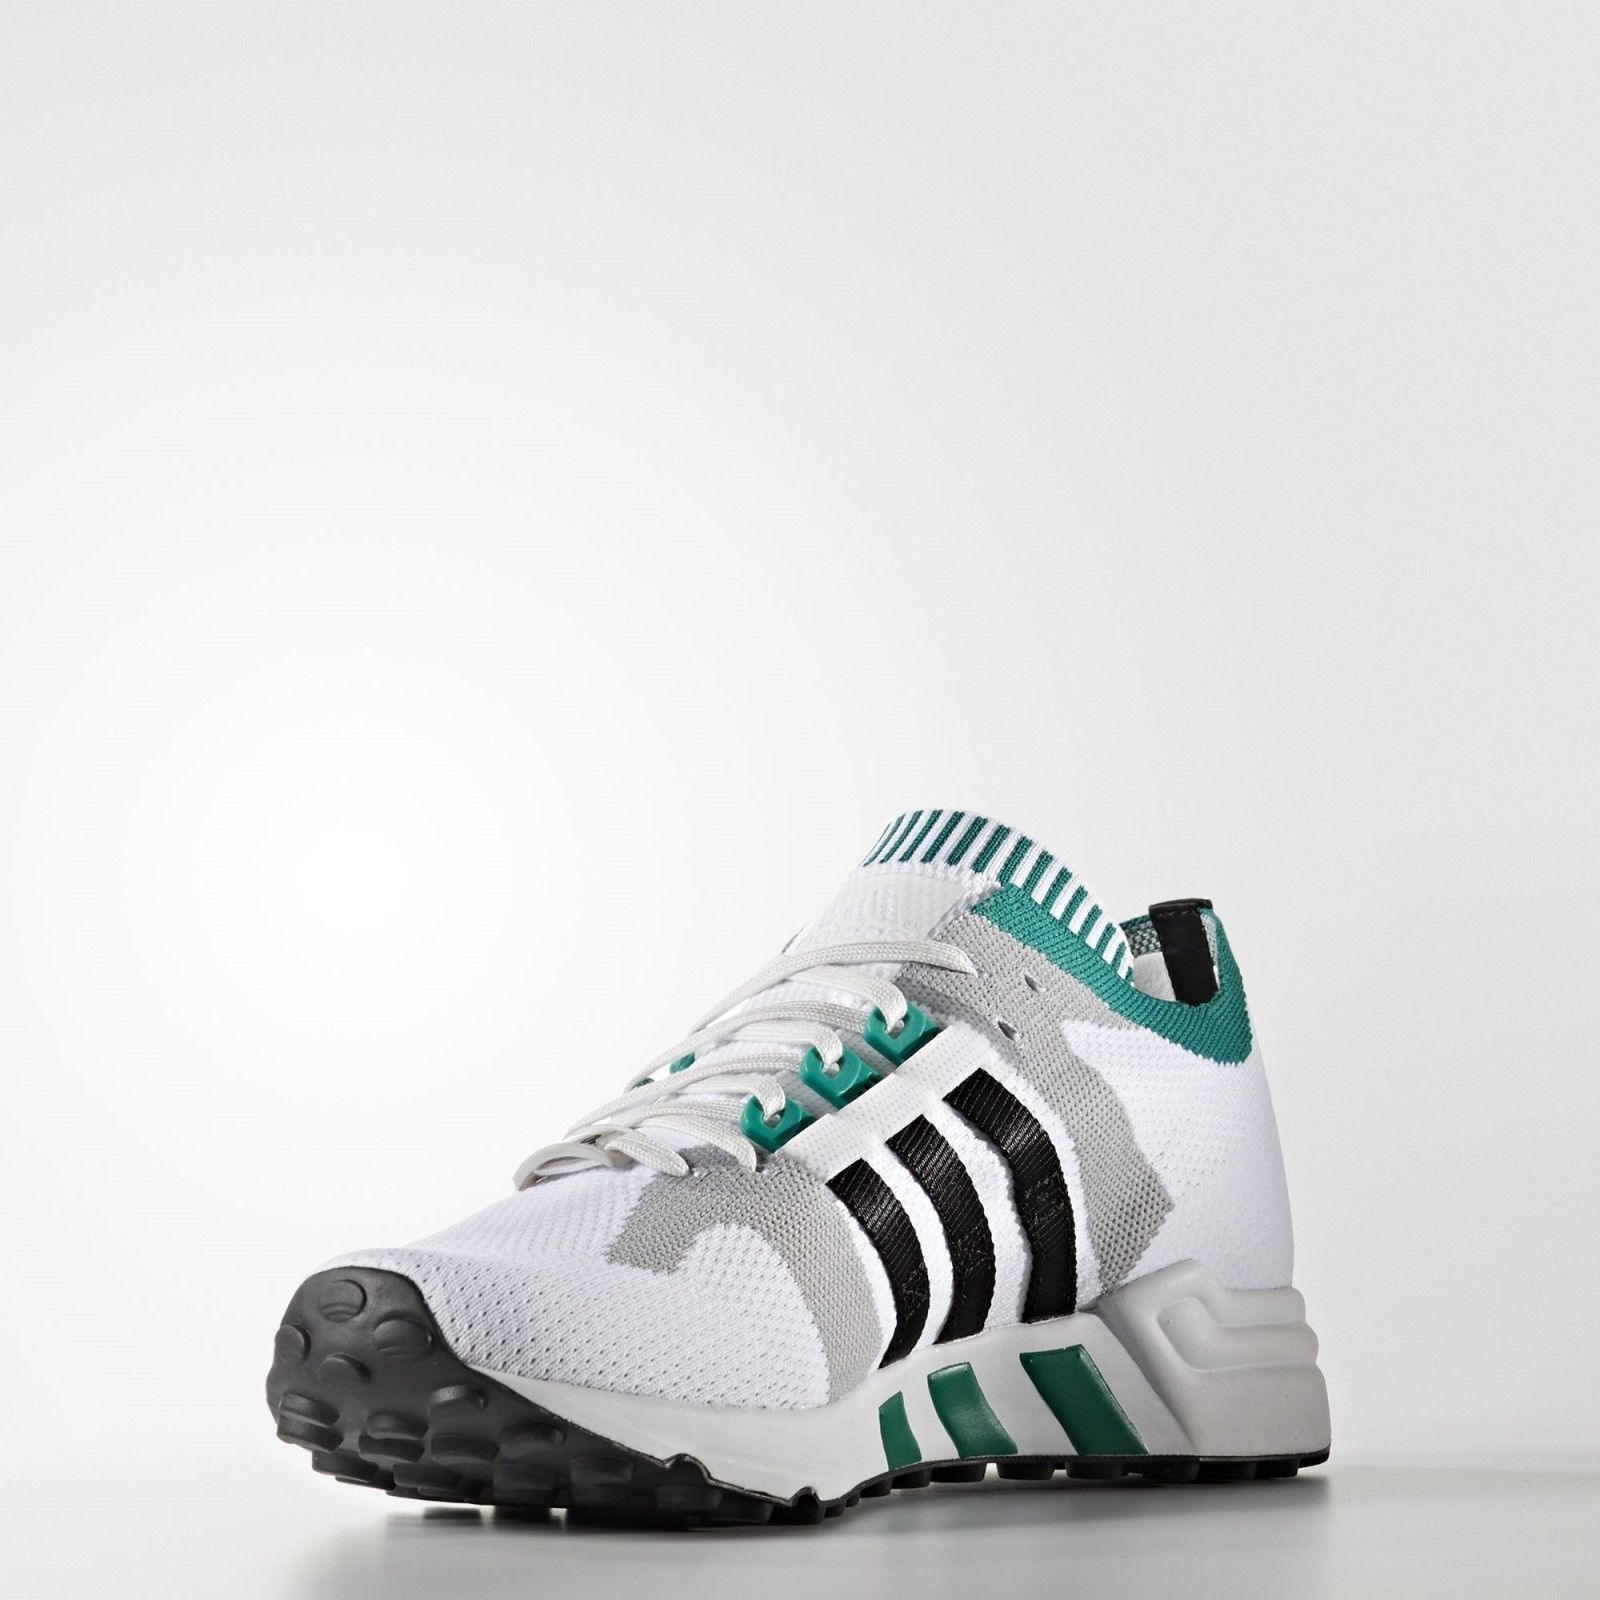 ADIDAS EQUIPMENT EQT CUSHION 93 PRIMEKNIT RUNNING SHOES SIZE 12.5 NEW (S79113)